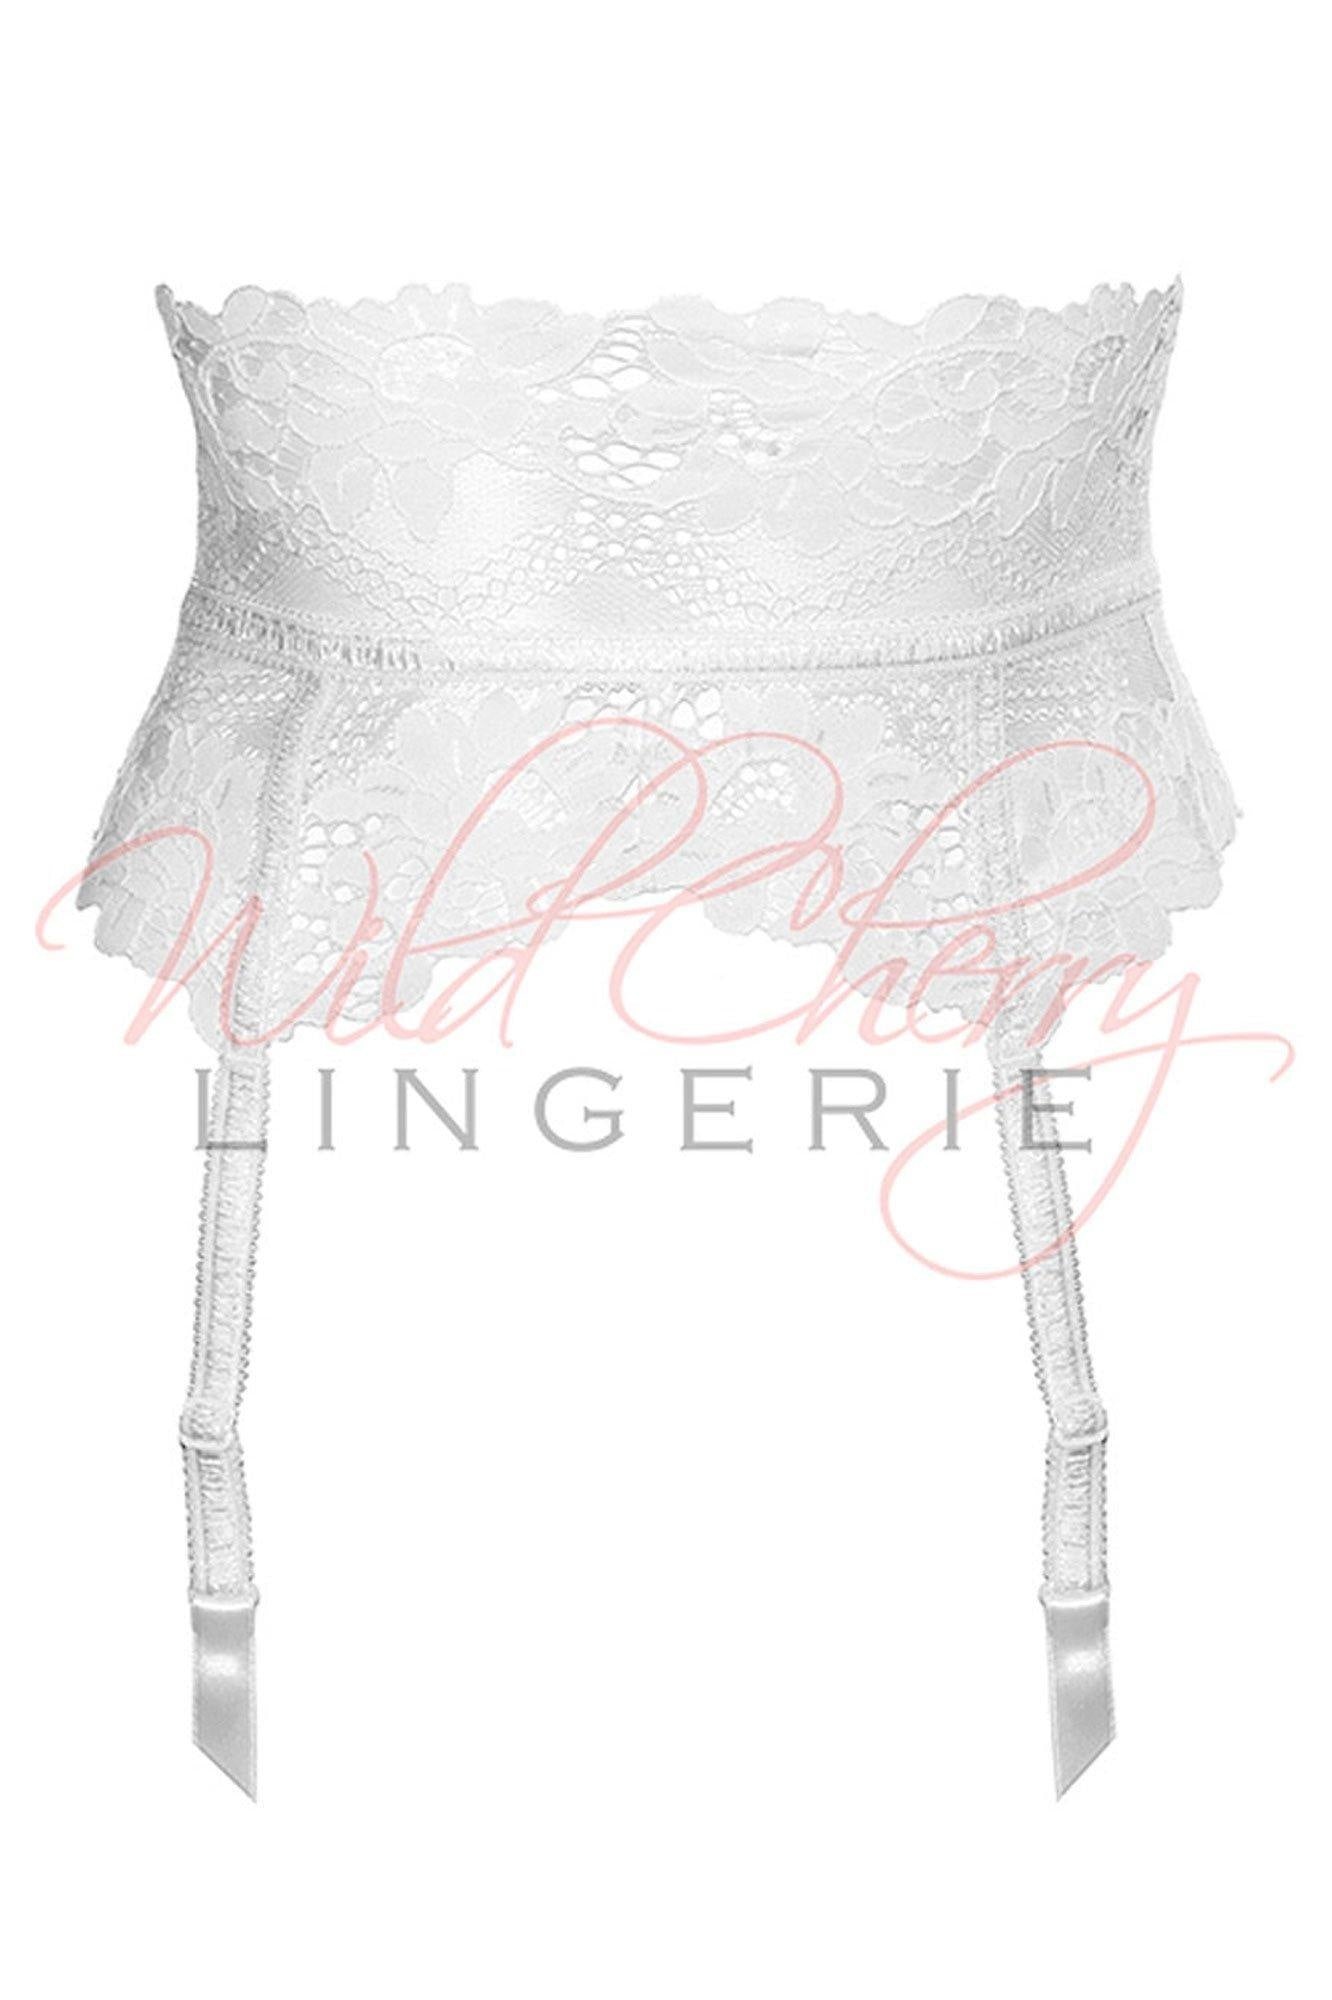 Daniella White Collection Suspender Belt VIPA Lingerie, Suspender Belts & Garter Leg, VIPA Lingerie - Wild Cherry Lingerie